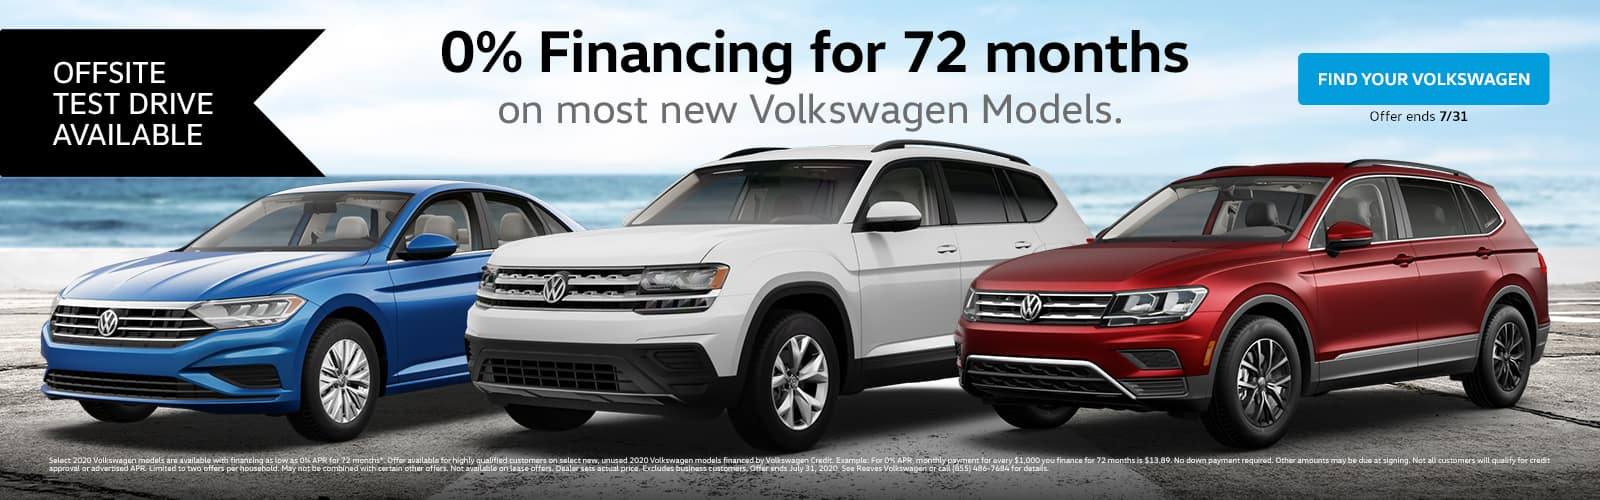 VW 0% Financing for 72 Months